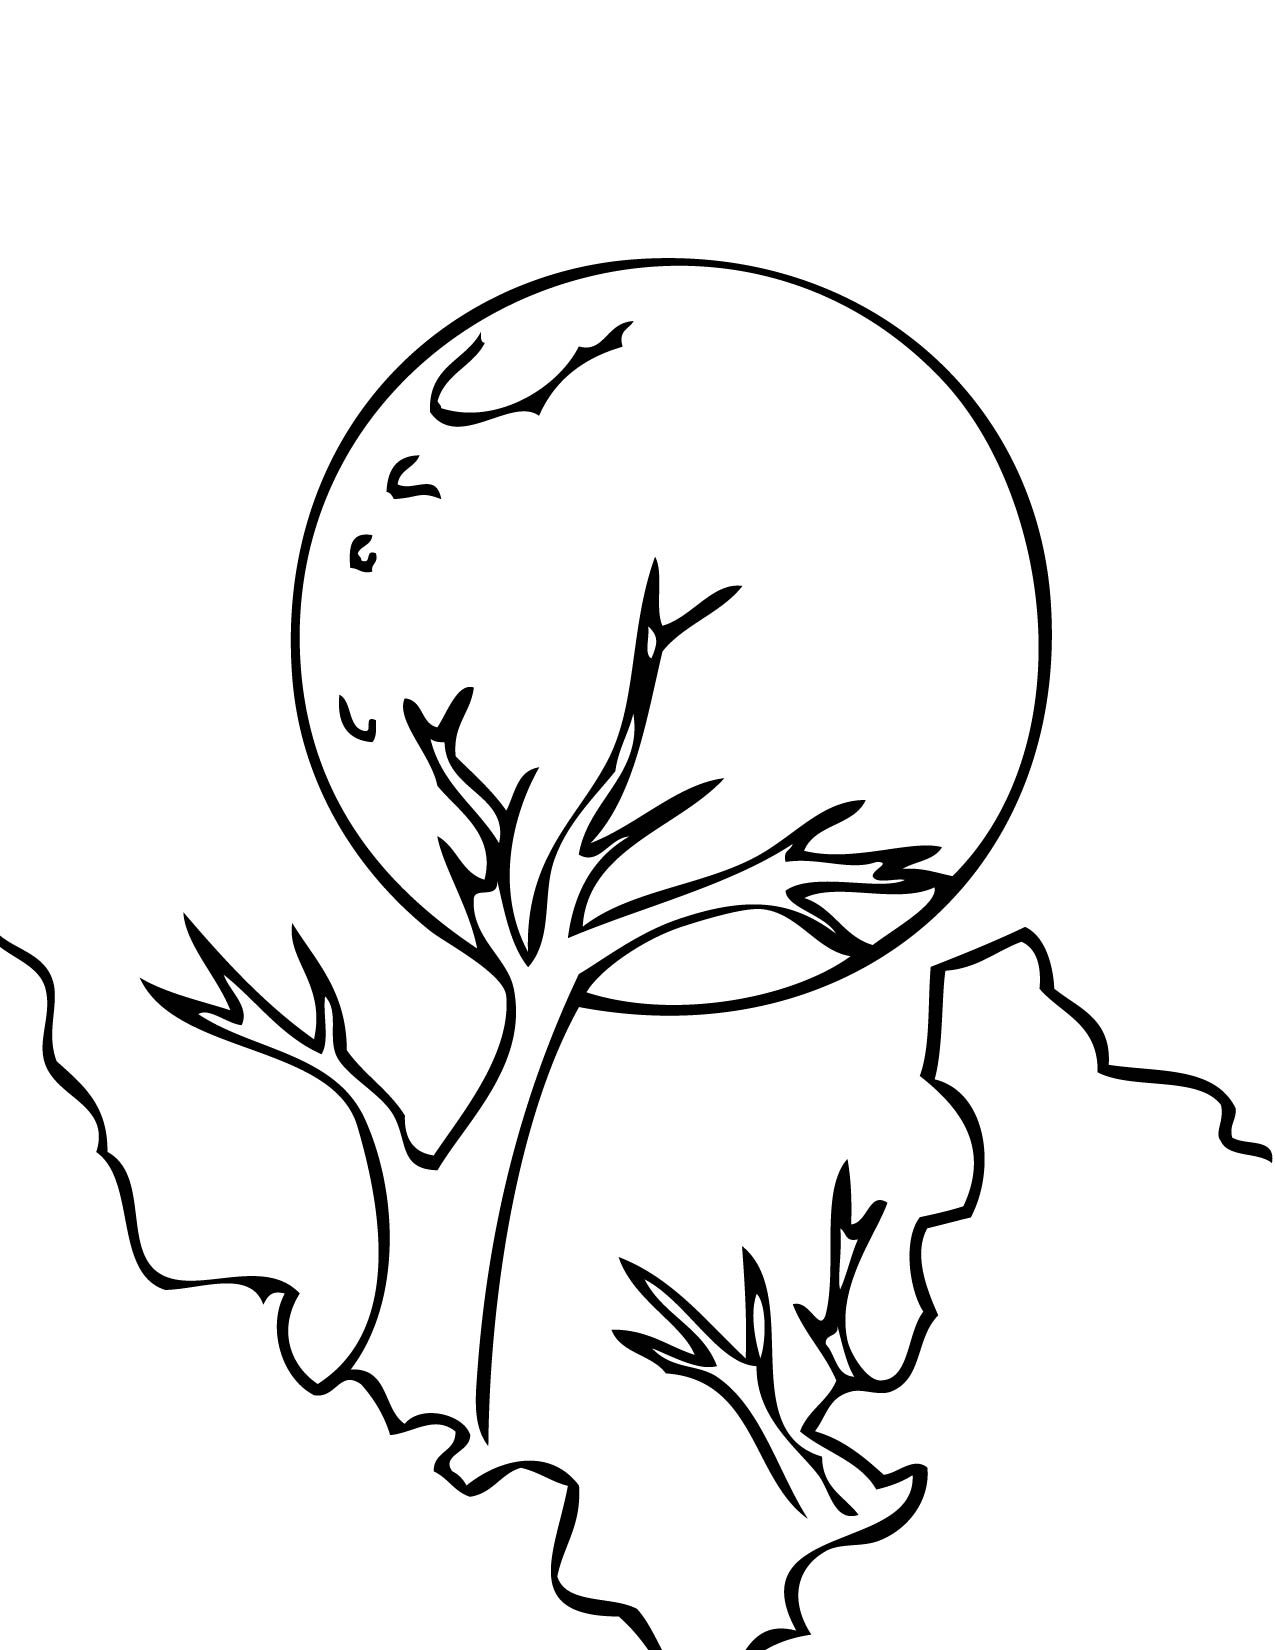 moon coloring pages for toddlers - photo#33